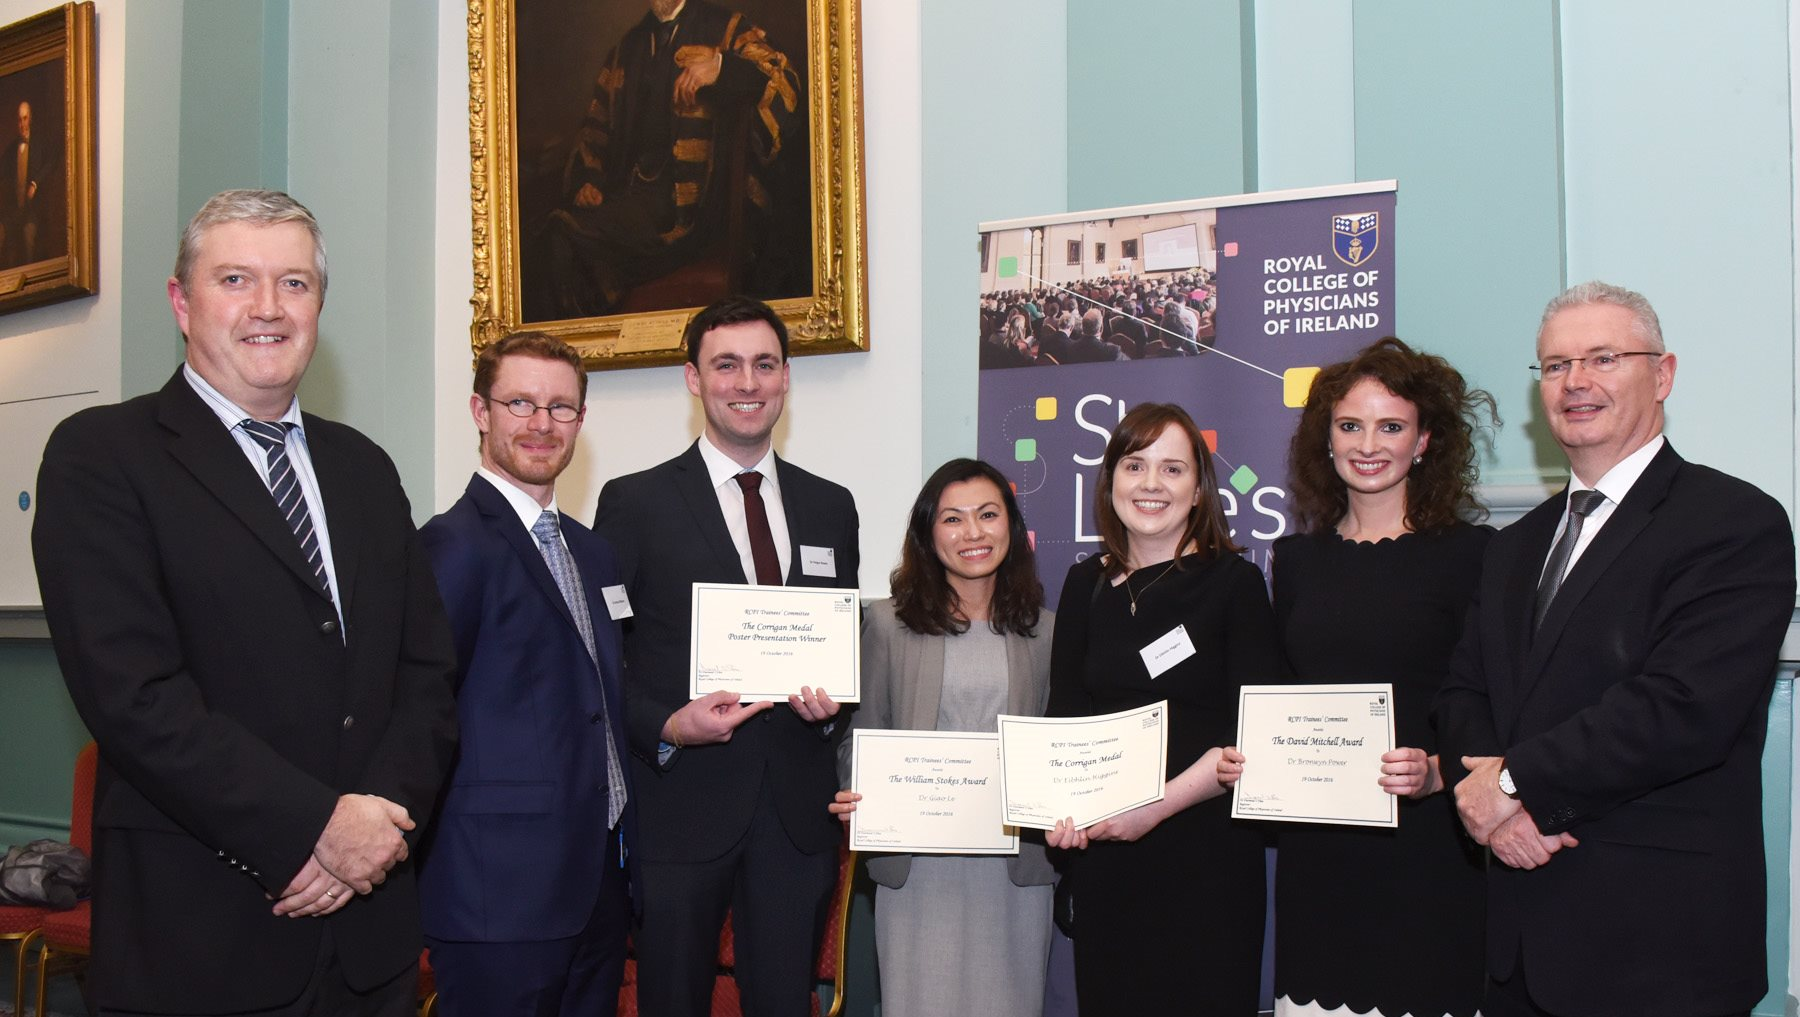 Trainee Awards winners 2016